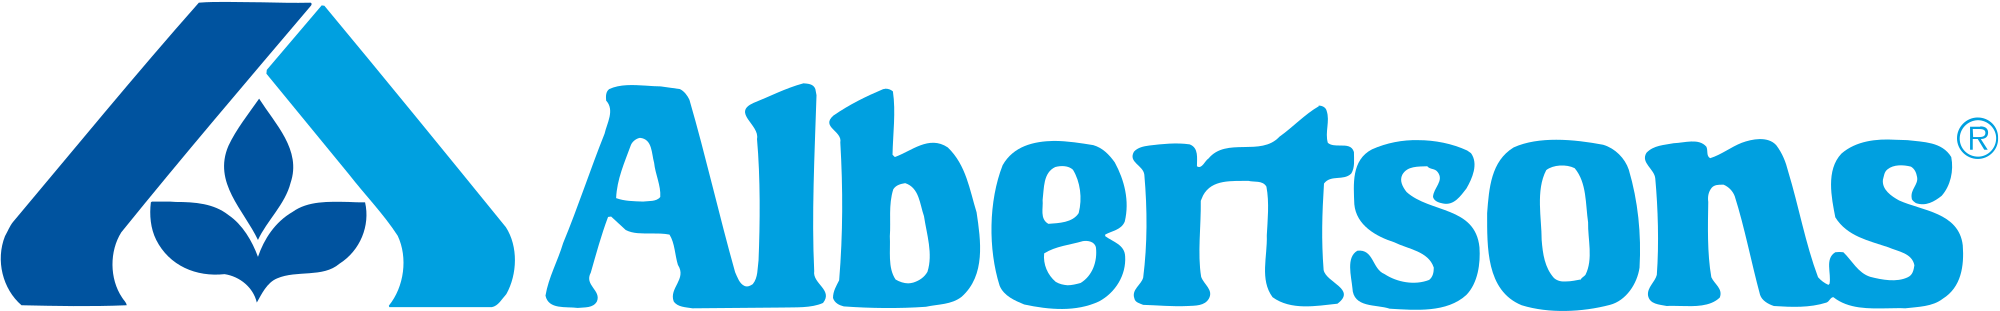 Blue and white logo for Albertsons with leaf pattern on the left